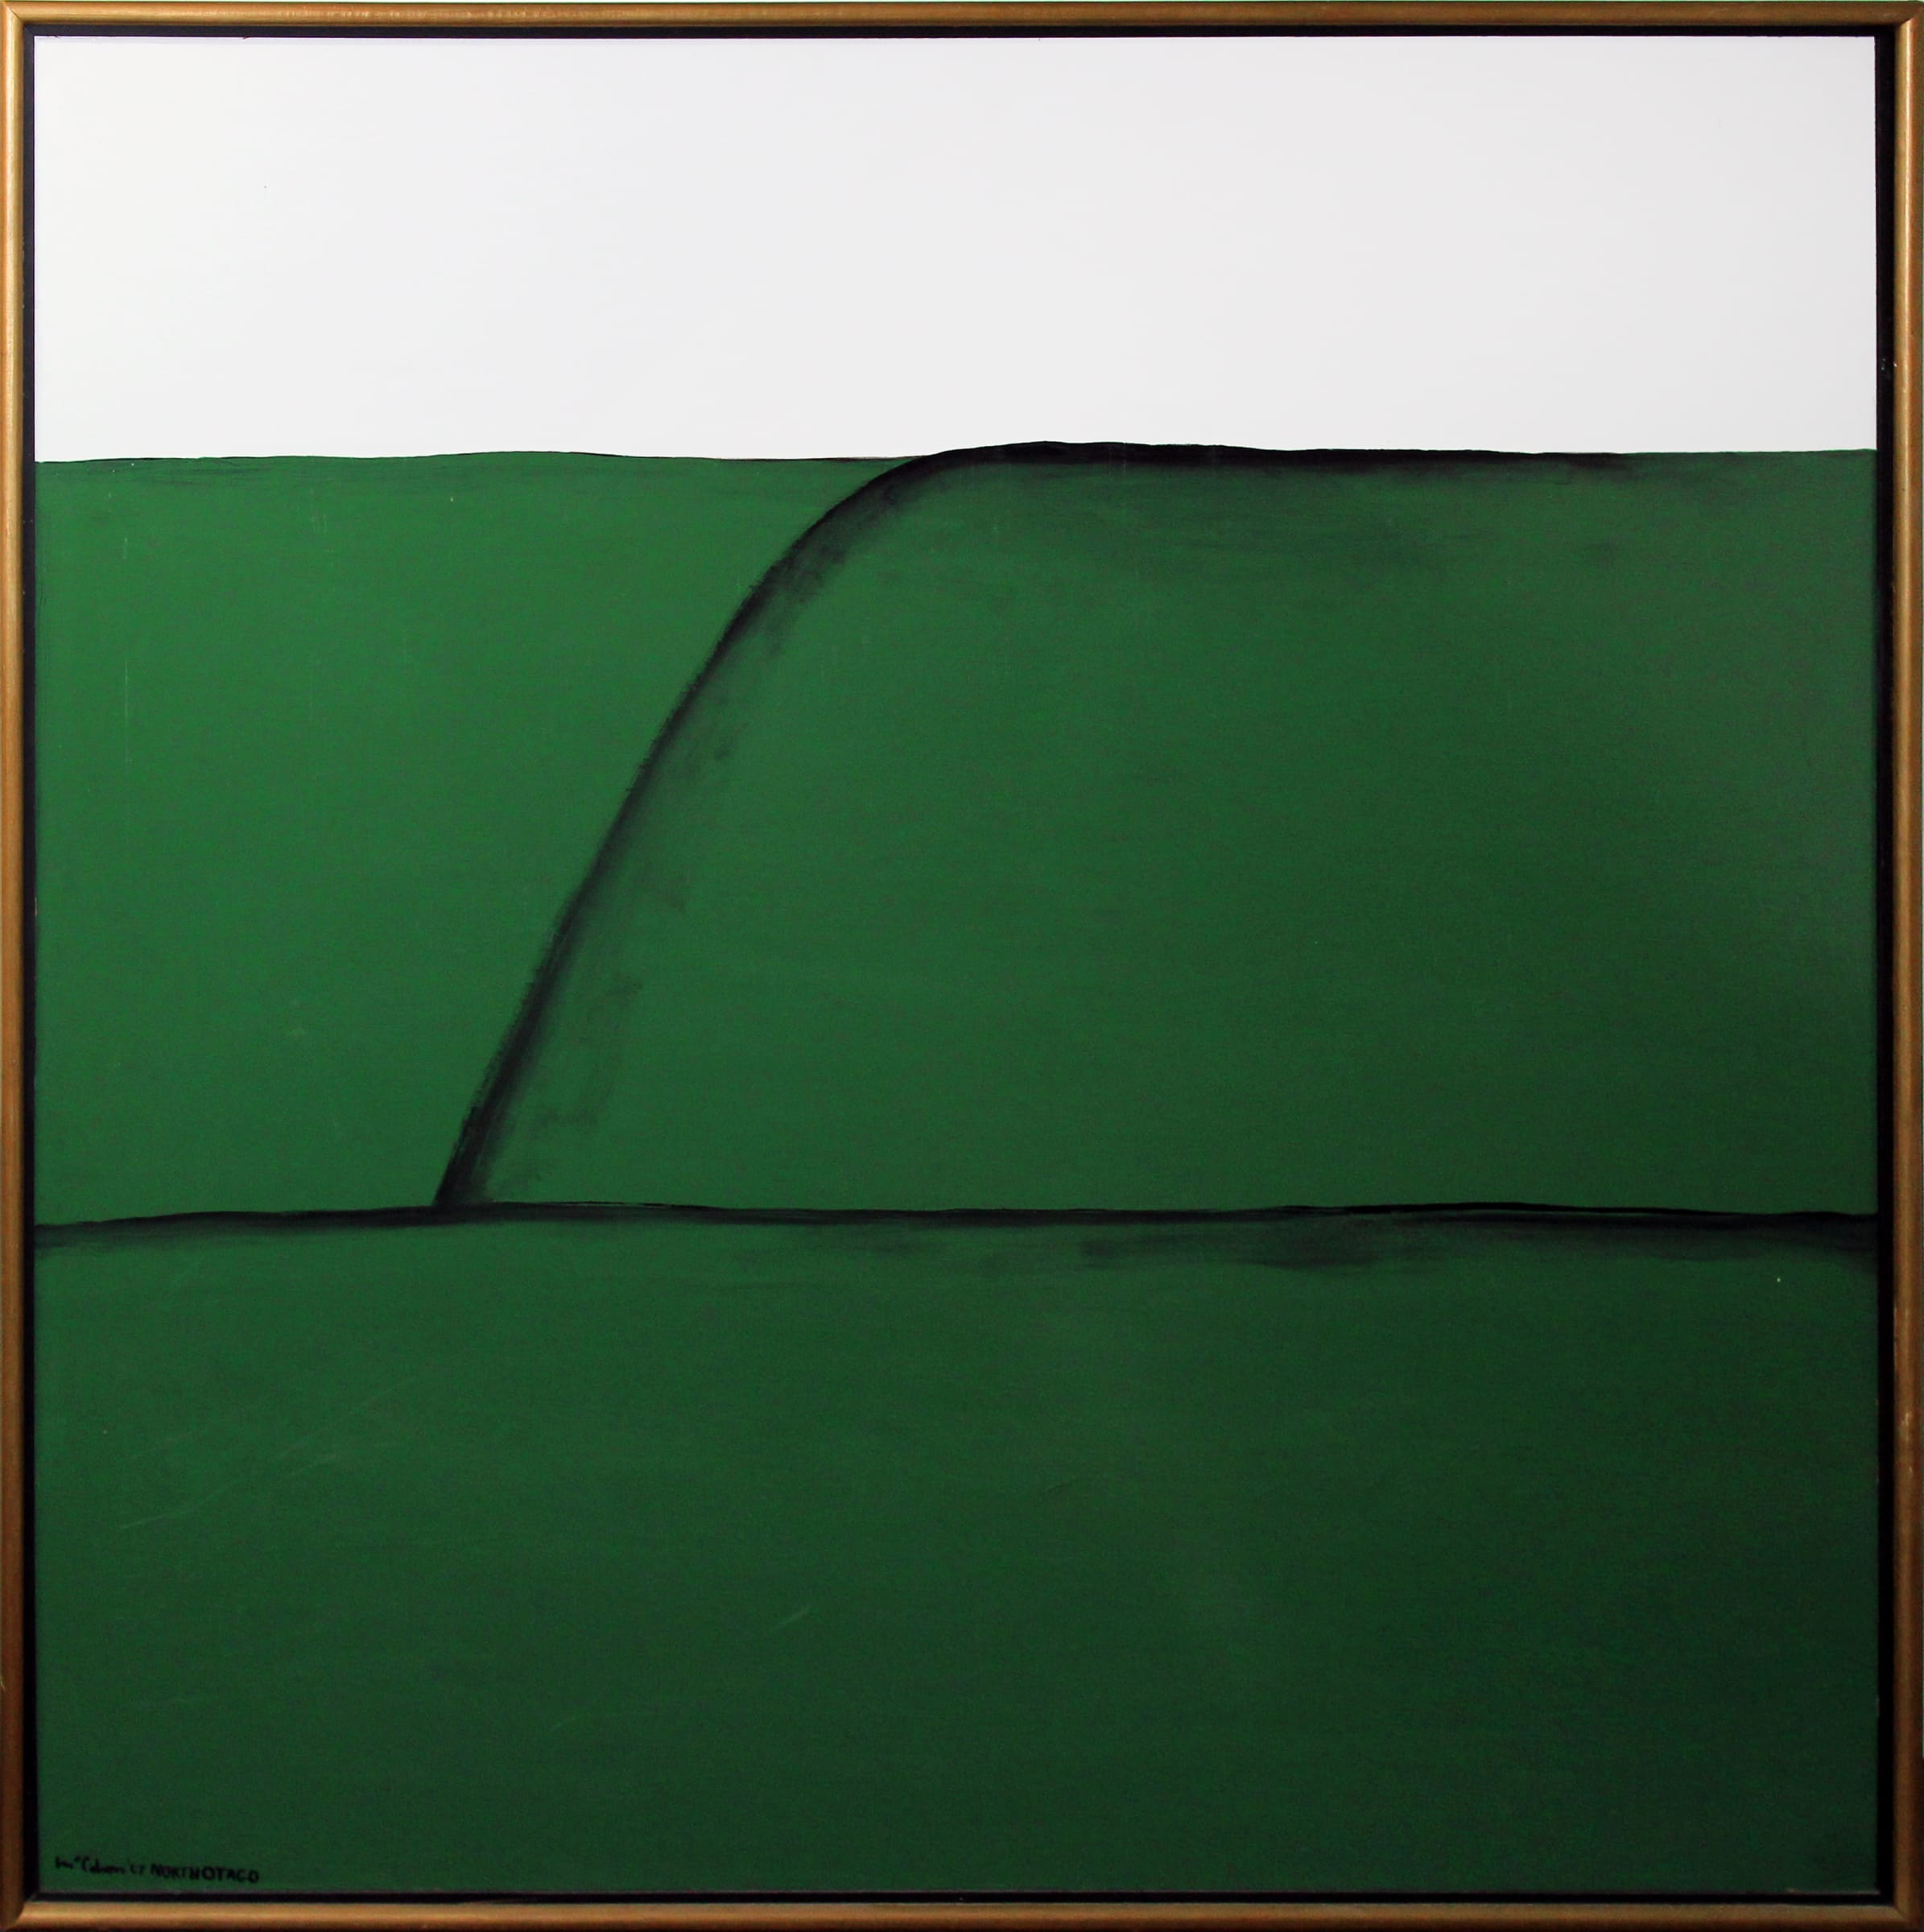 "<span class=""link fancybox-details-link""><a href=""/artists/89-colin-mccahon/works/5181-colin-mccahon-north-otago-landscape-5-1967/"">View Detail Page</a></span><div class=""artist""><strong>Colin McCAHON</strong></div> <div class=""title""><em>North Otago Landscape 5</em>, 1967</div> <div class=""medium"">Oil on hardboard</div> <div class=""dimensions"">47.7 x 47.2 in<br />121.2 x 120 cm</div>"